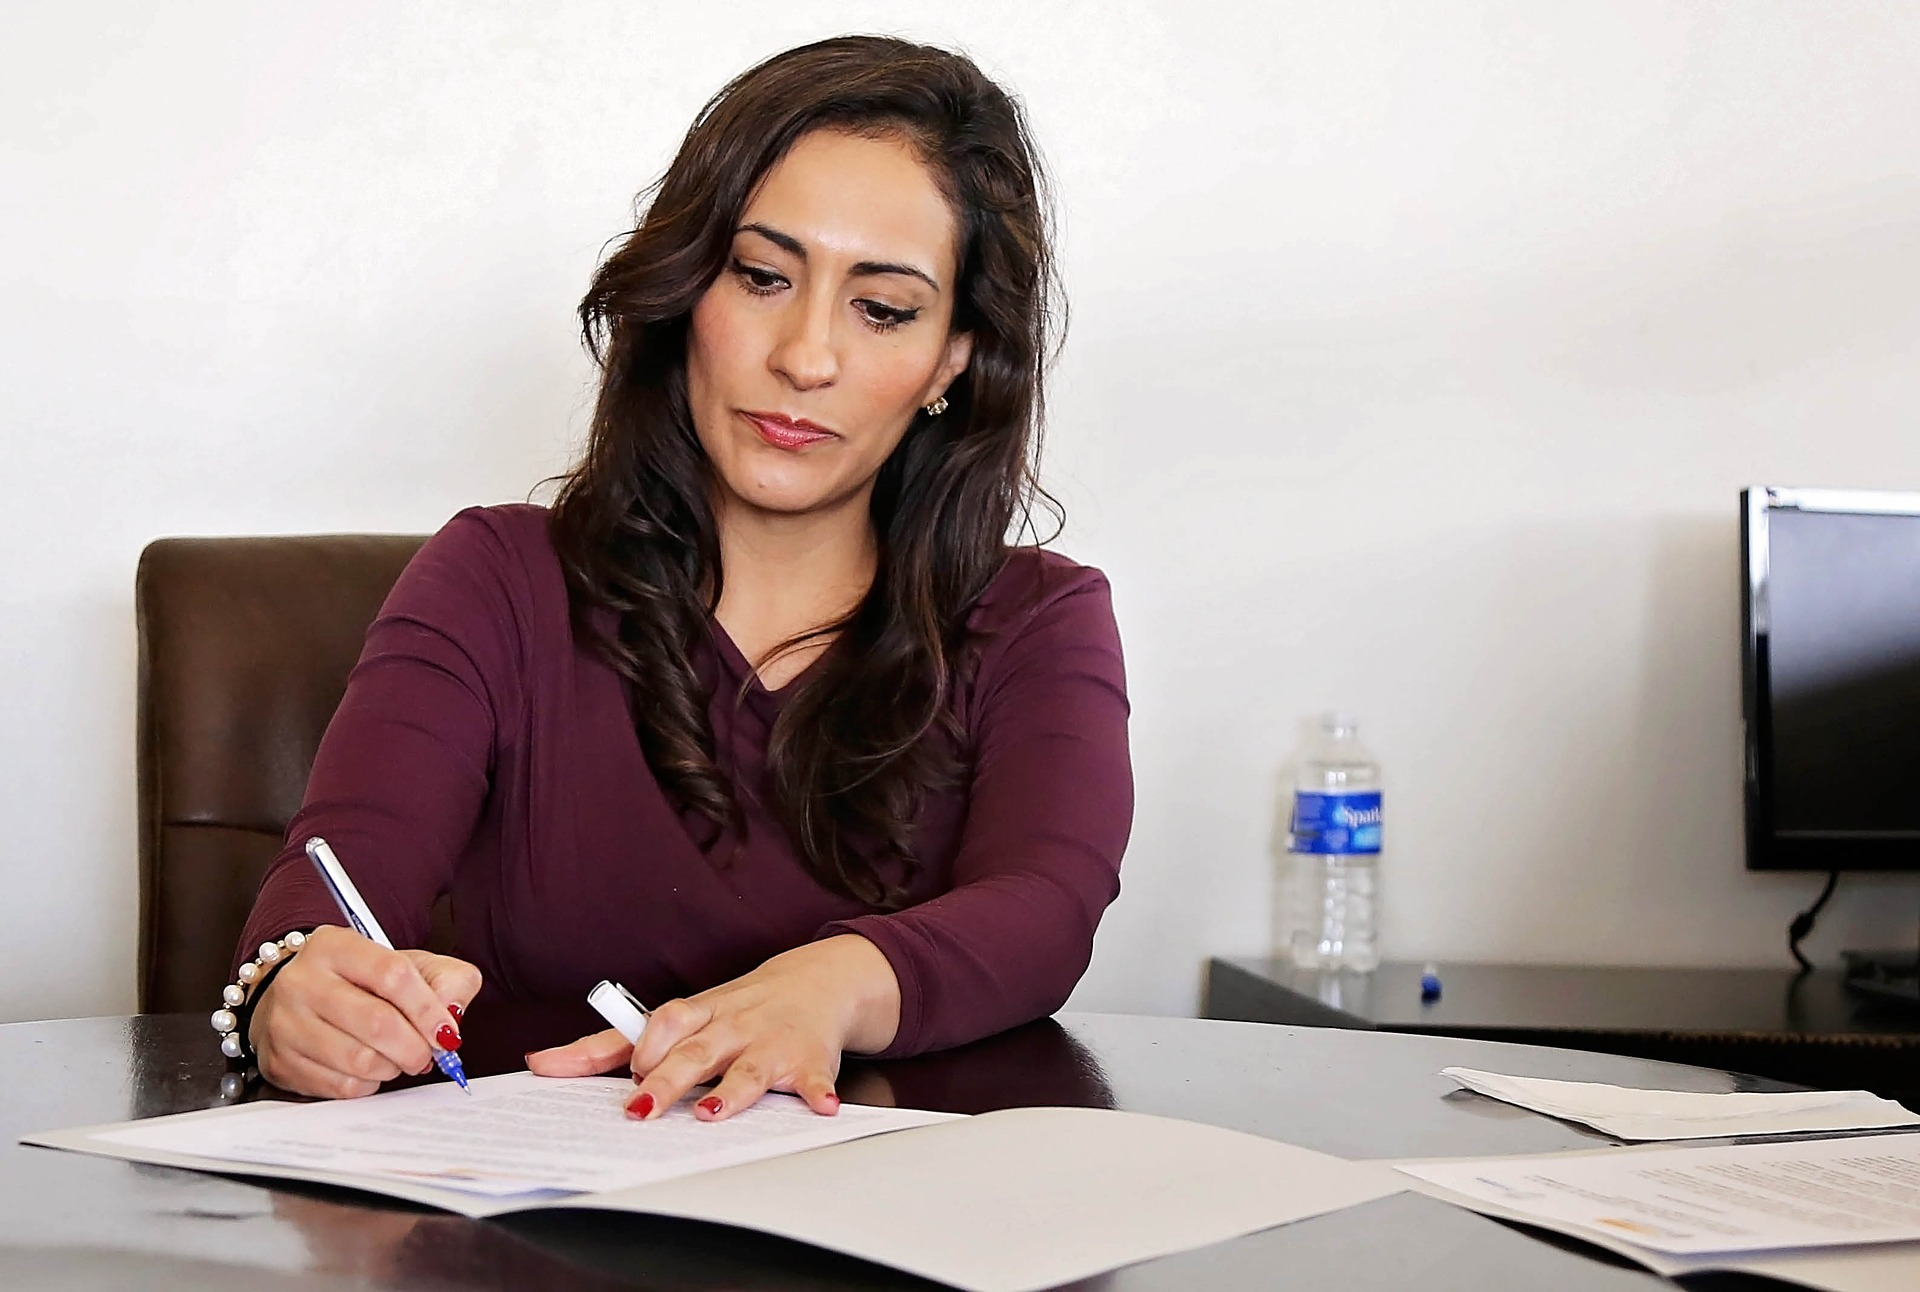 Woman writing with a pen